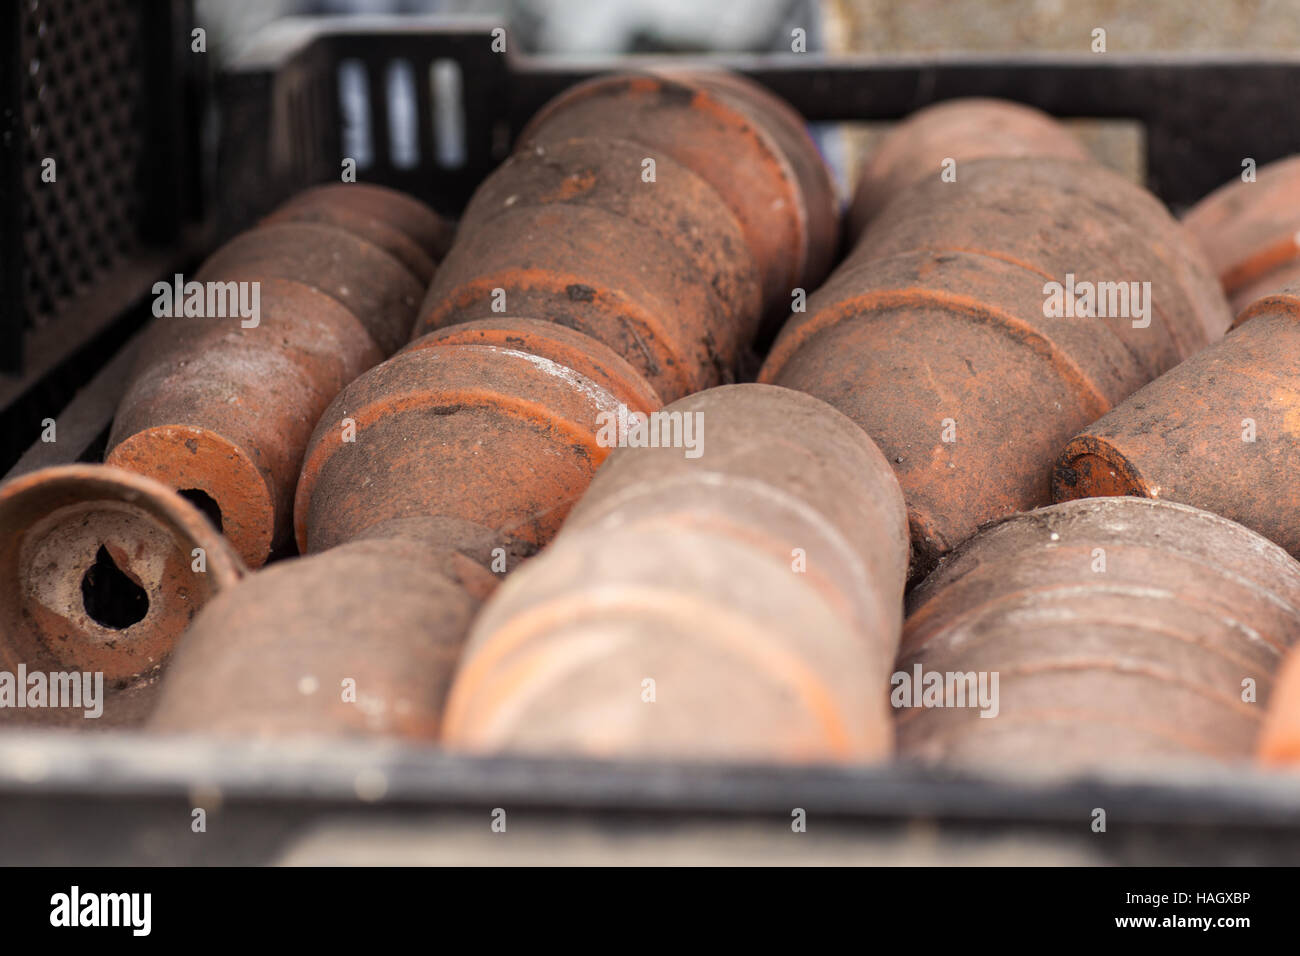 Old and dirty terracotta plant pots in a tray Stock Photo